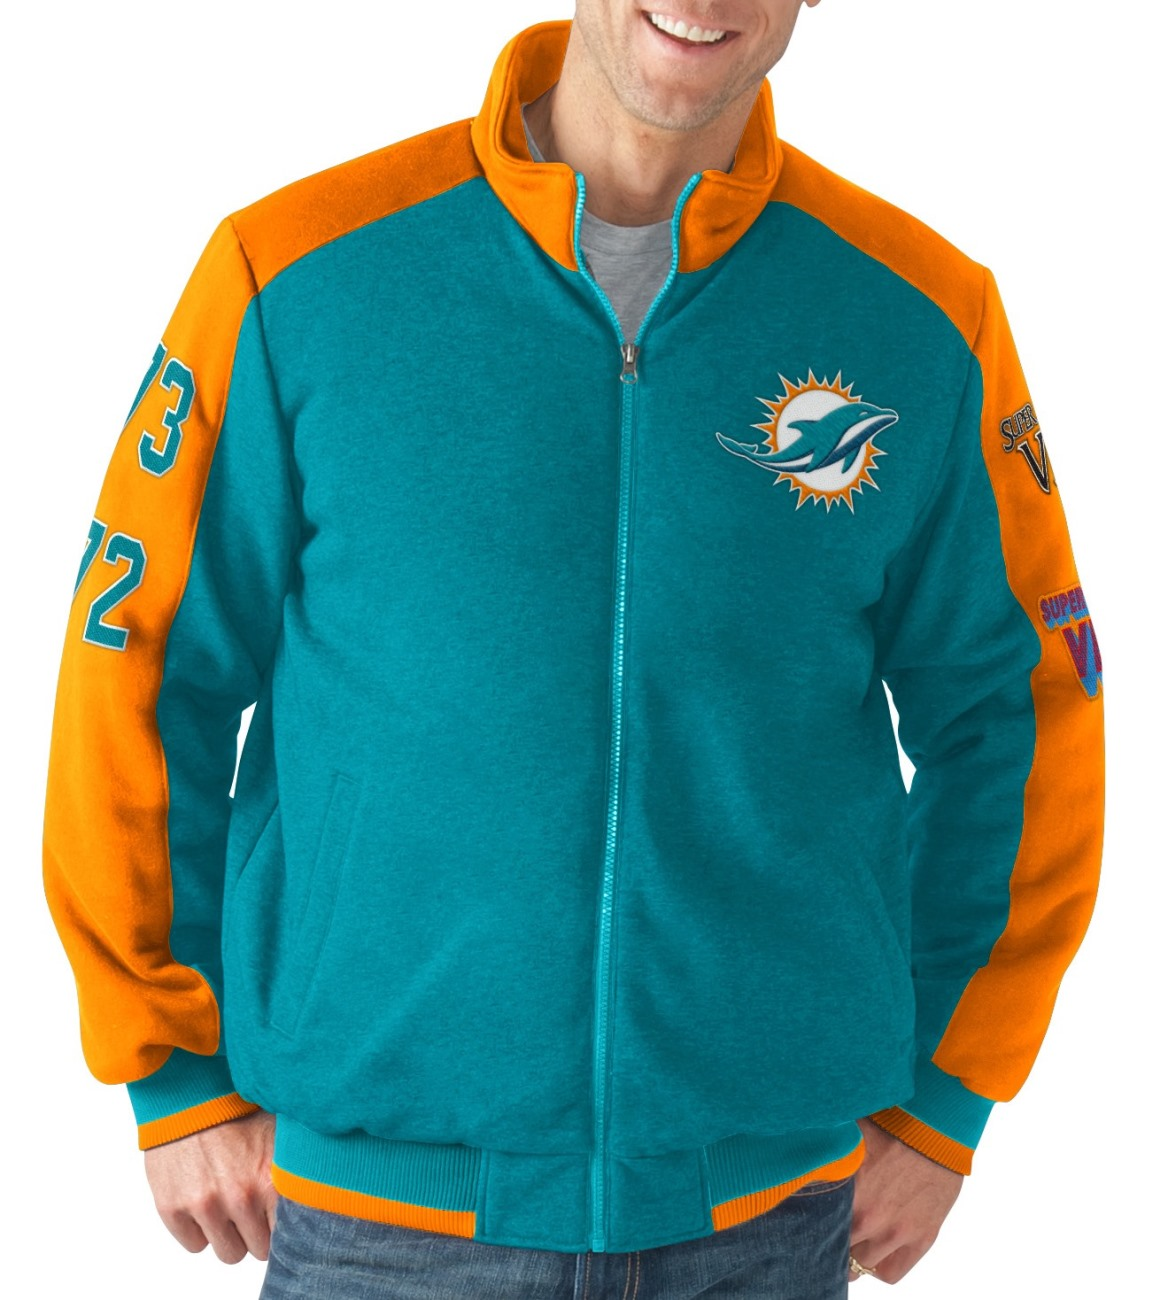 """Miami Dolphins NFL """"Classic"""" Men's Super Bowl Commemorative Varsity Jacket by G-III Sports"""